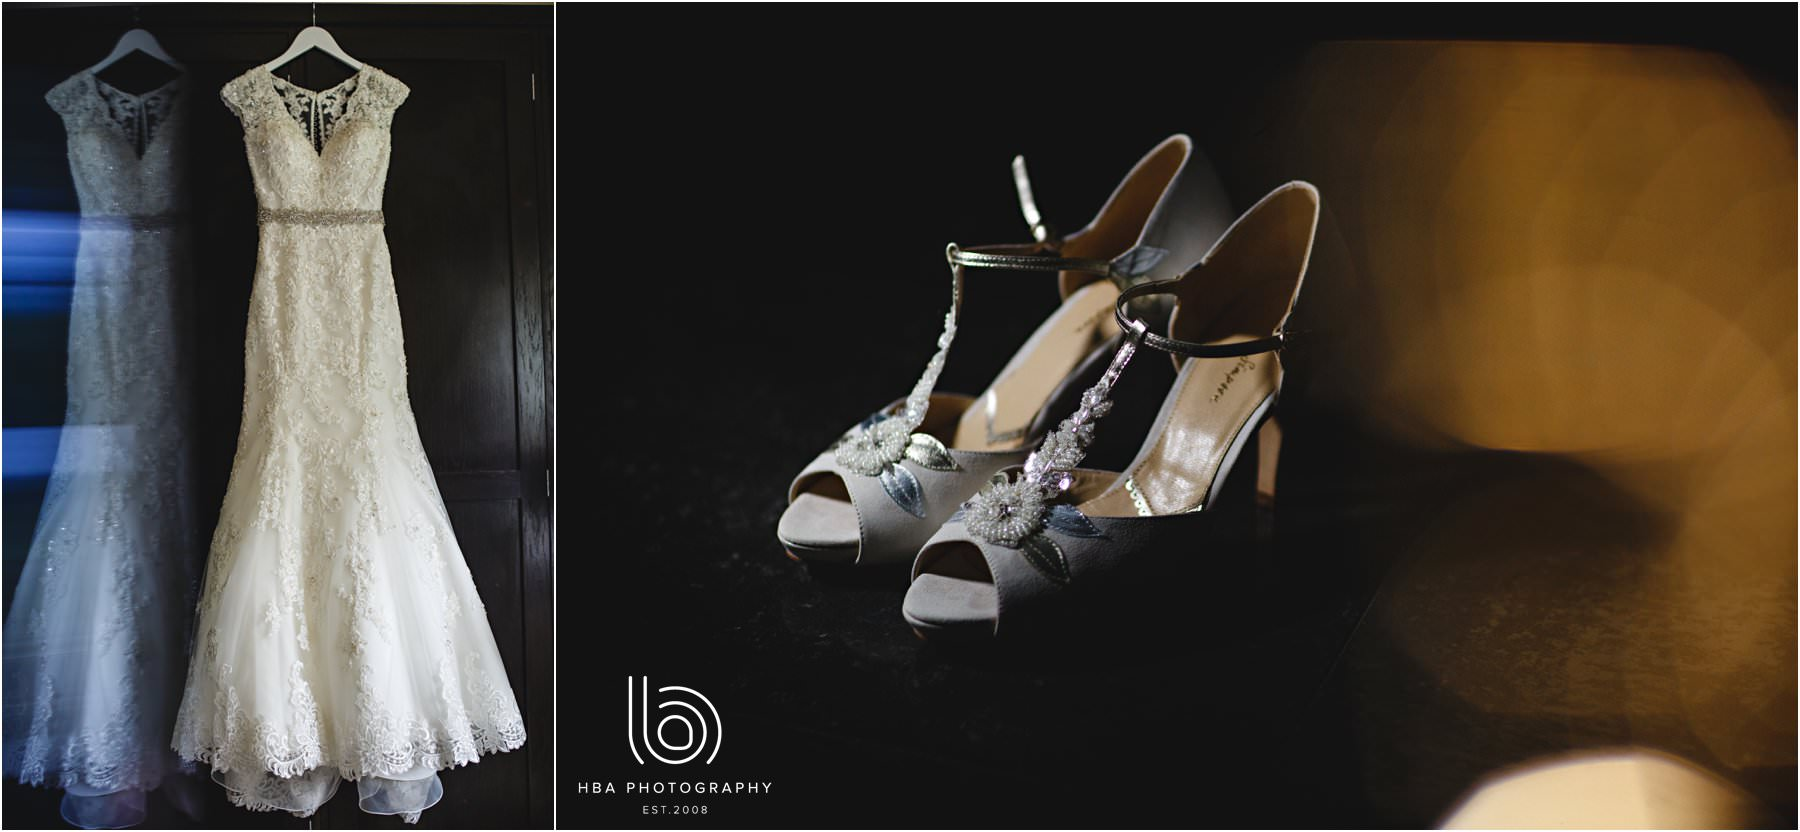 the bride's shoes and dress